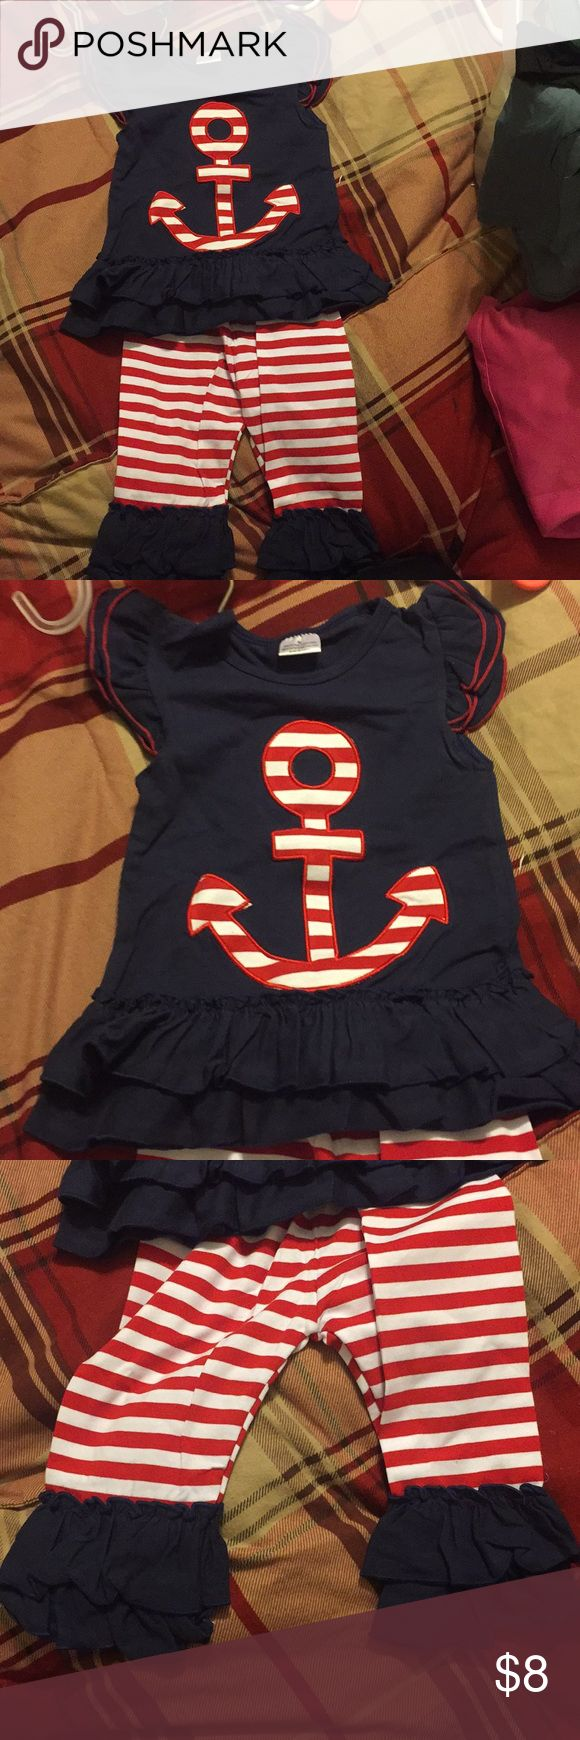 Anchor outfit Toddler size small summer outfit Matching Sets